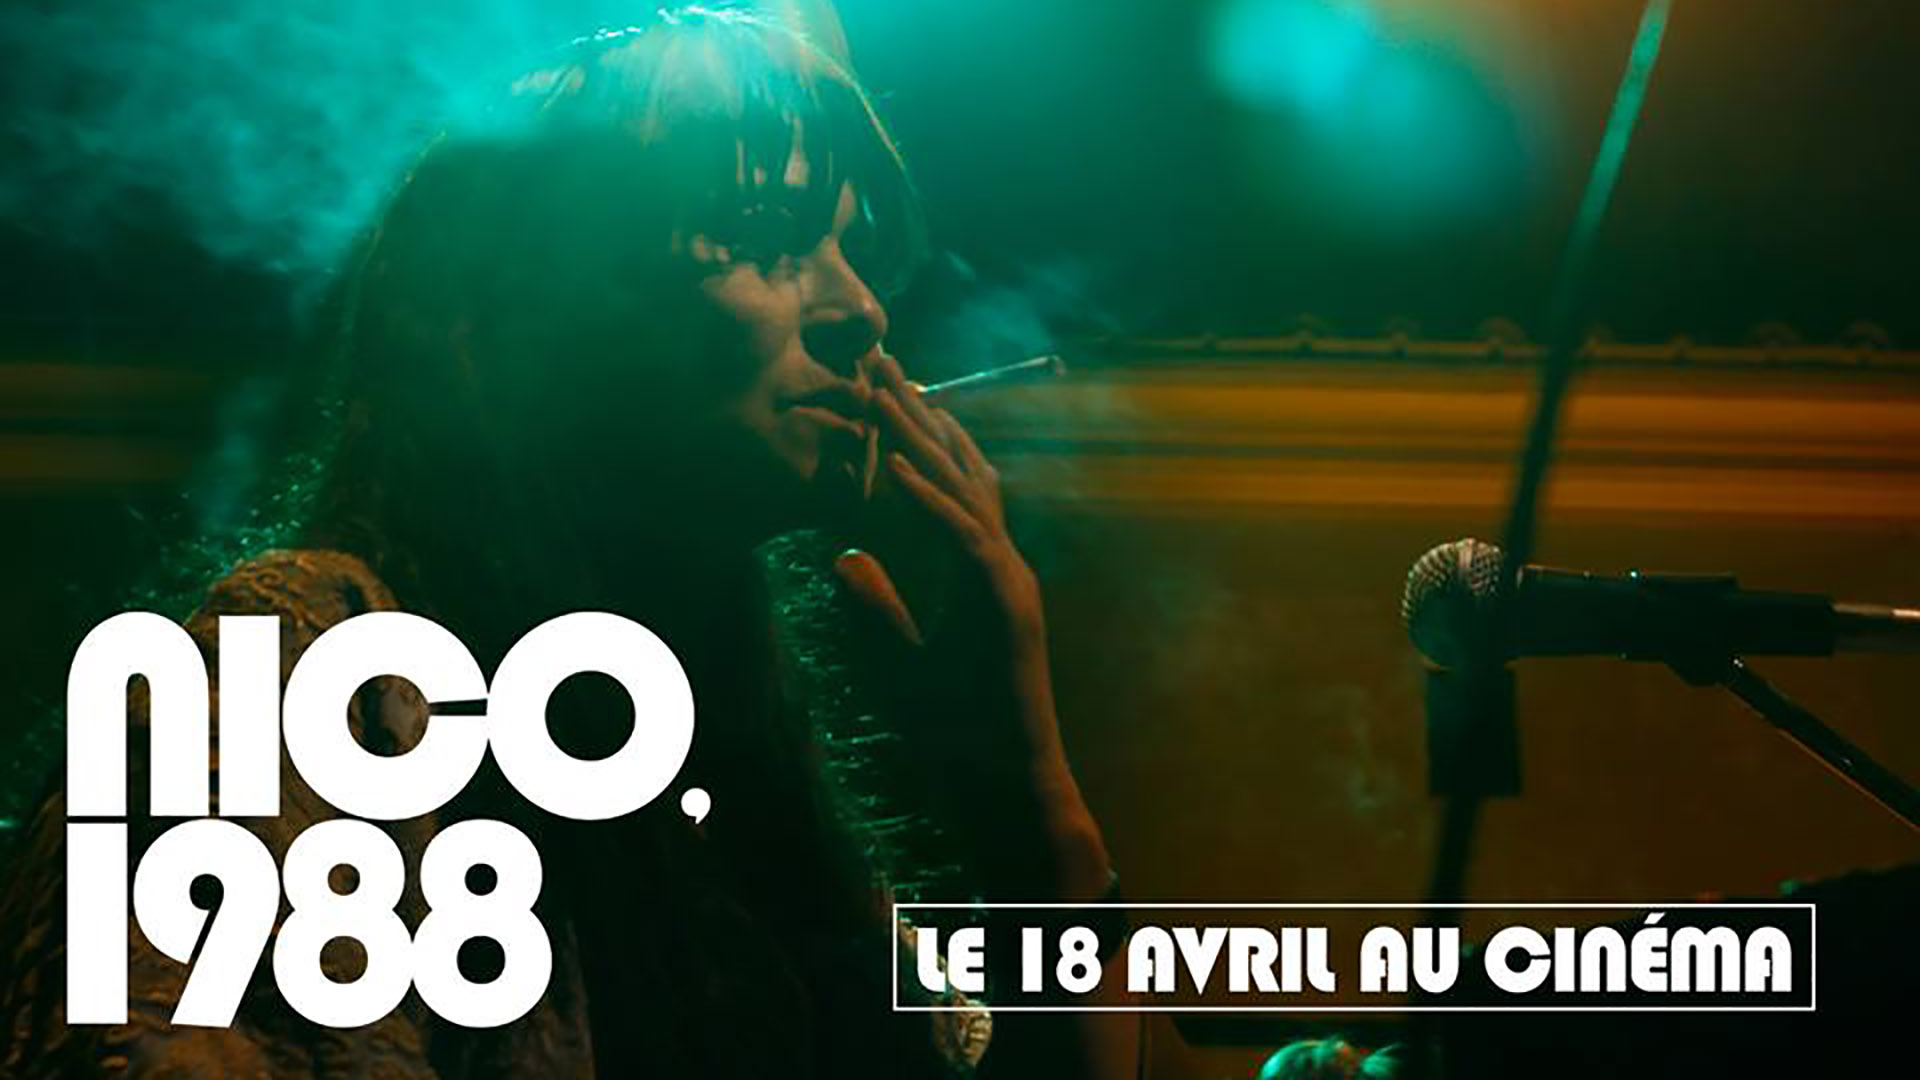 "Image for: ""NICO, 1988"" ESCE IN FRANCIA E IN BELGIO"